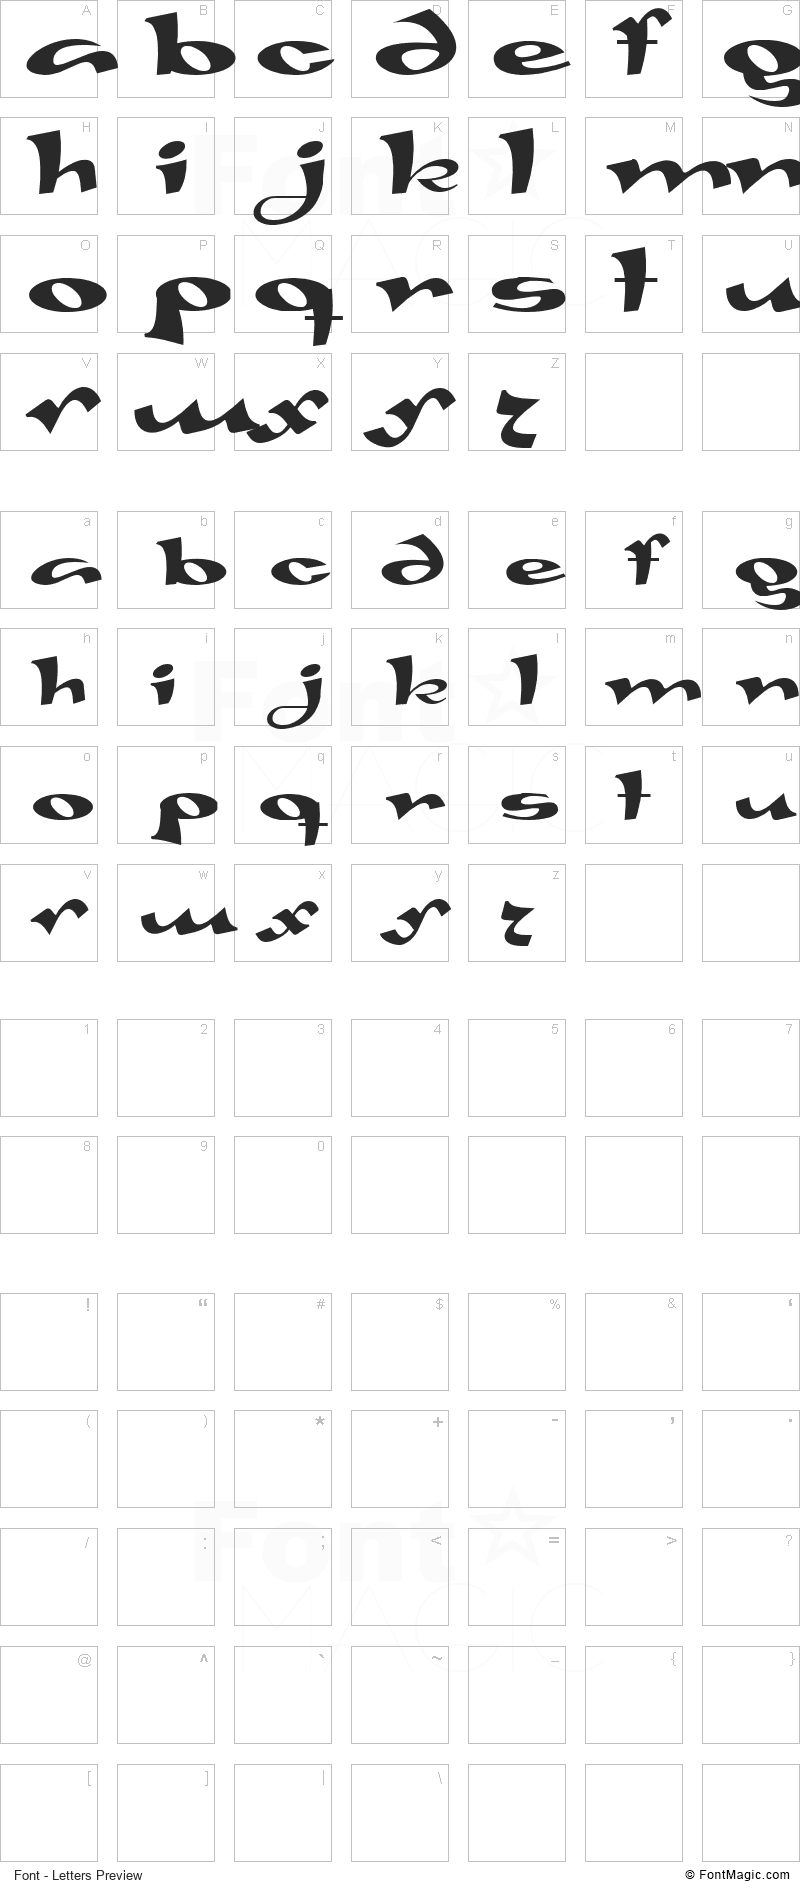 Gaivota Font - All Latters Preview Chart